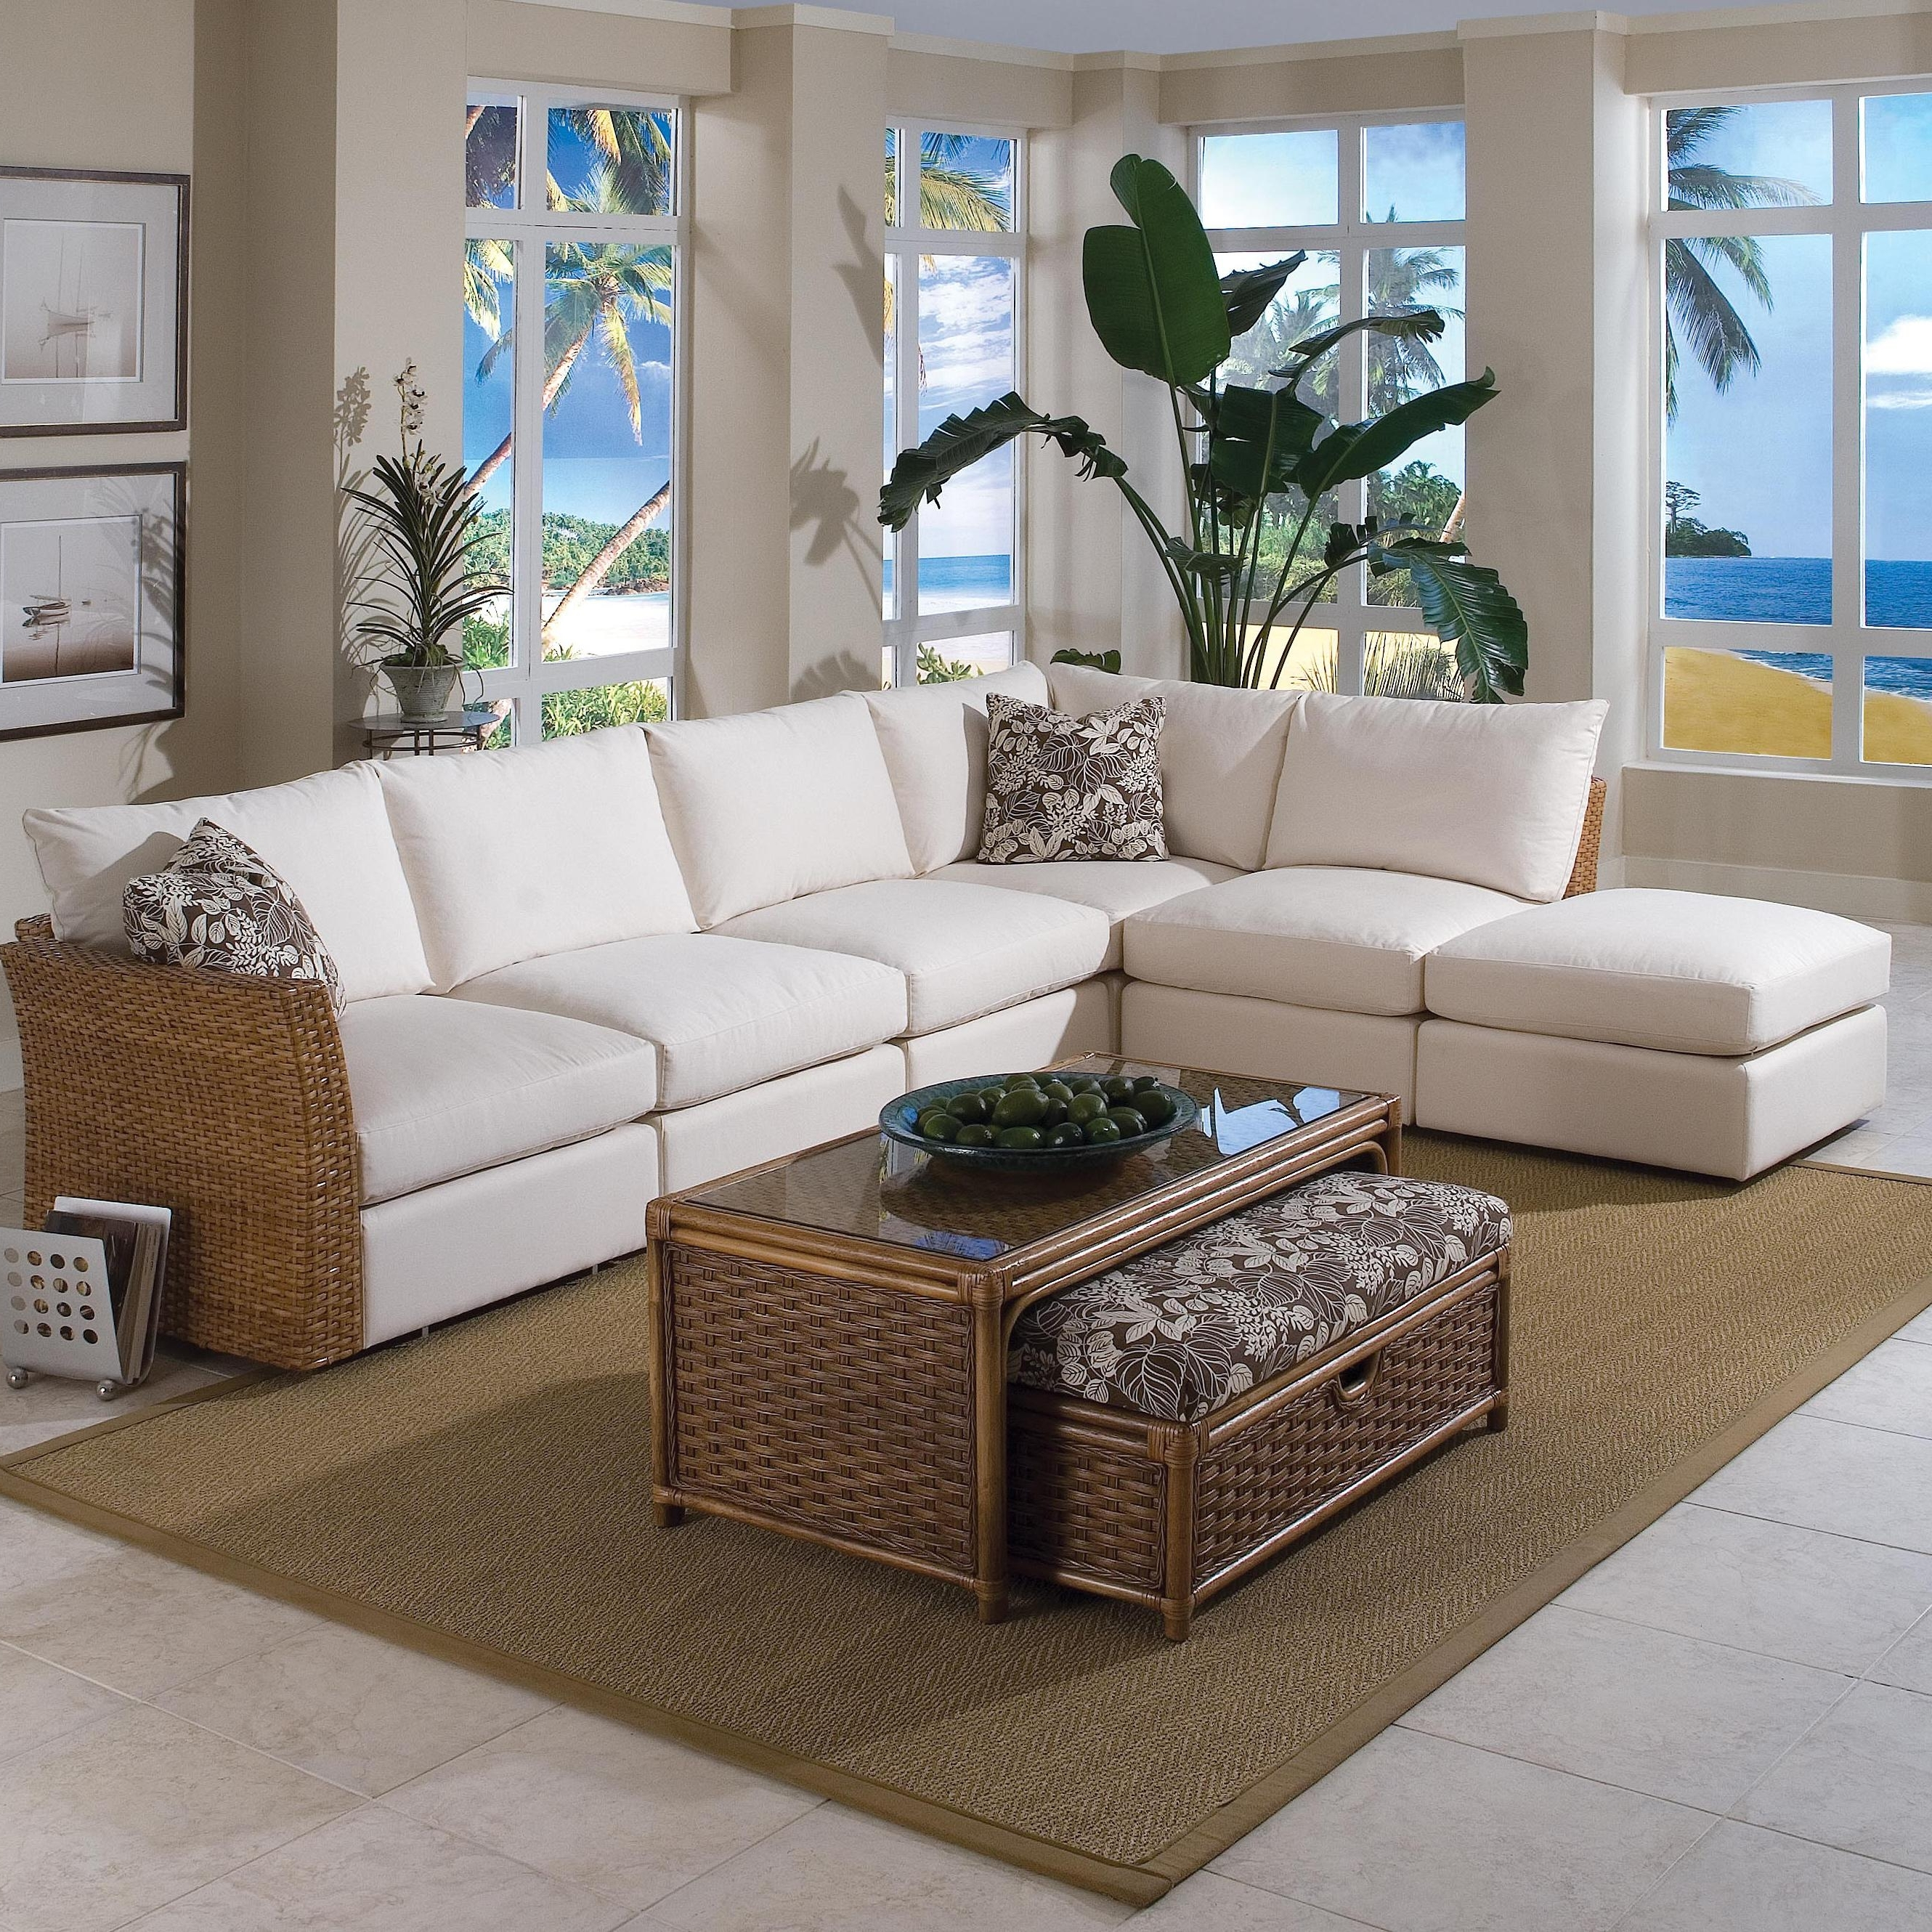 Preferred Greenville Sc Sectional Sofas With Regard To Braxton Culler Grand Water Point Tropical Sectional Sofa With Two (View 19 of 20)